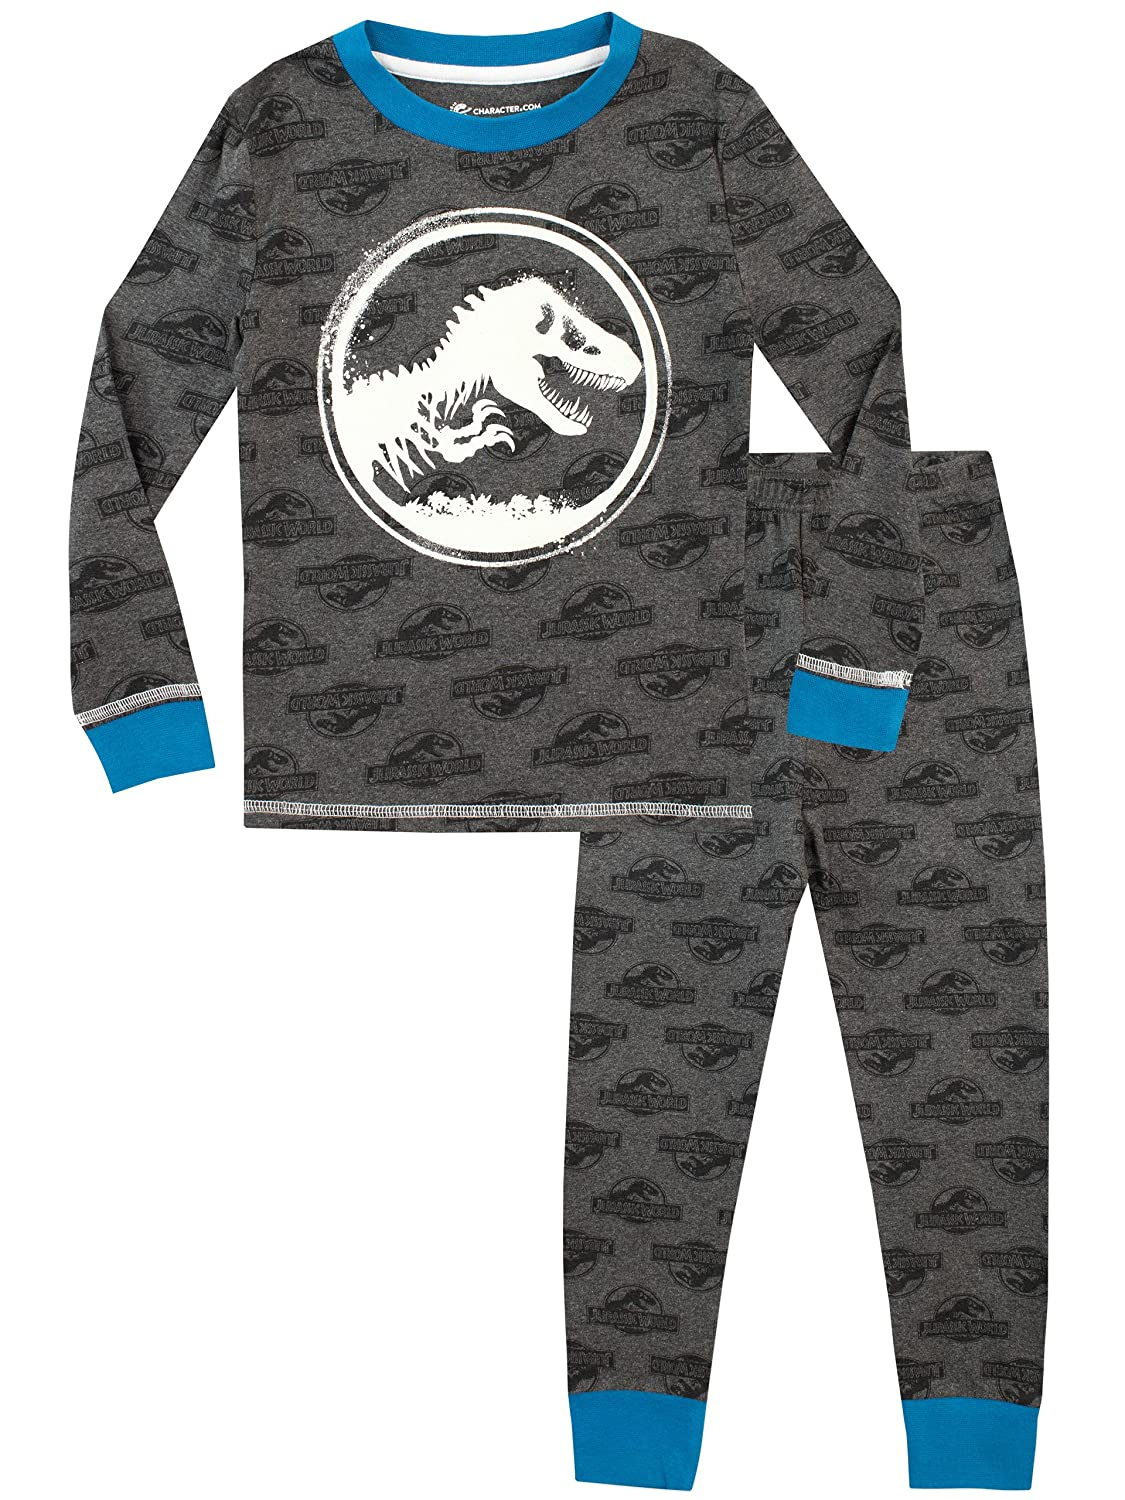 JURASSIC WORLD Boys' Glow in The Dark Pajamas